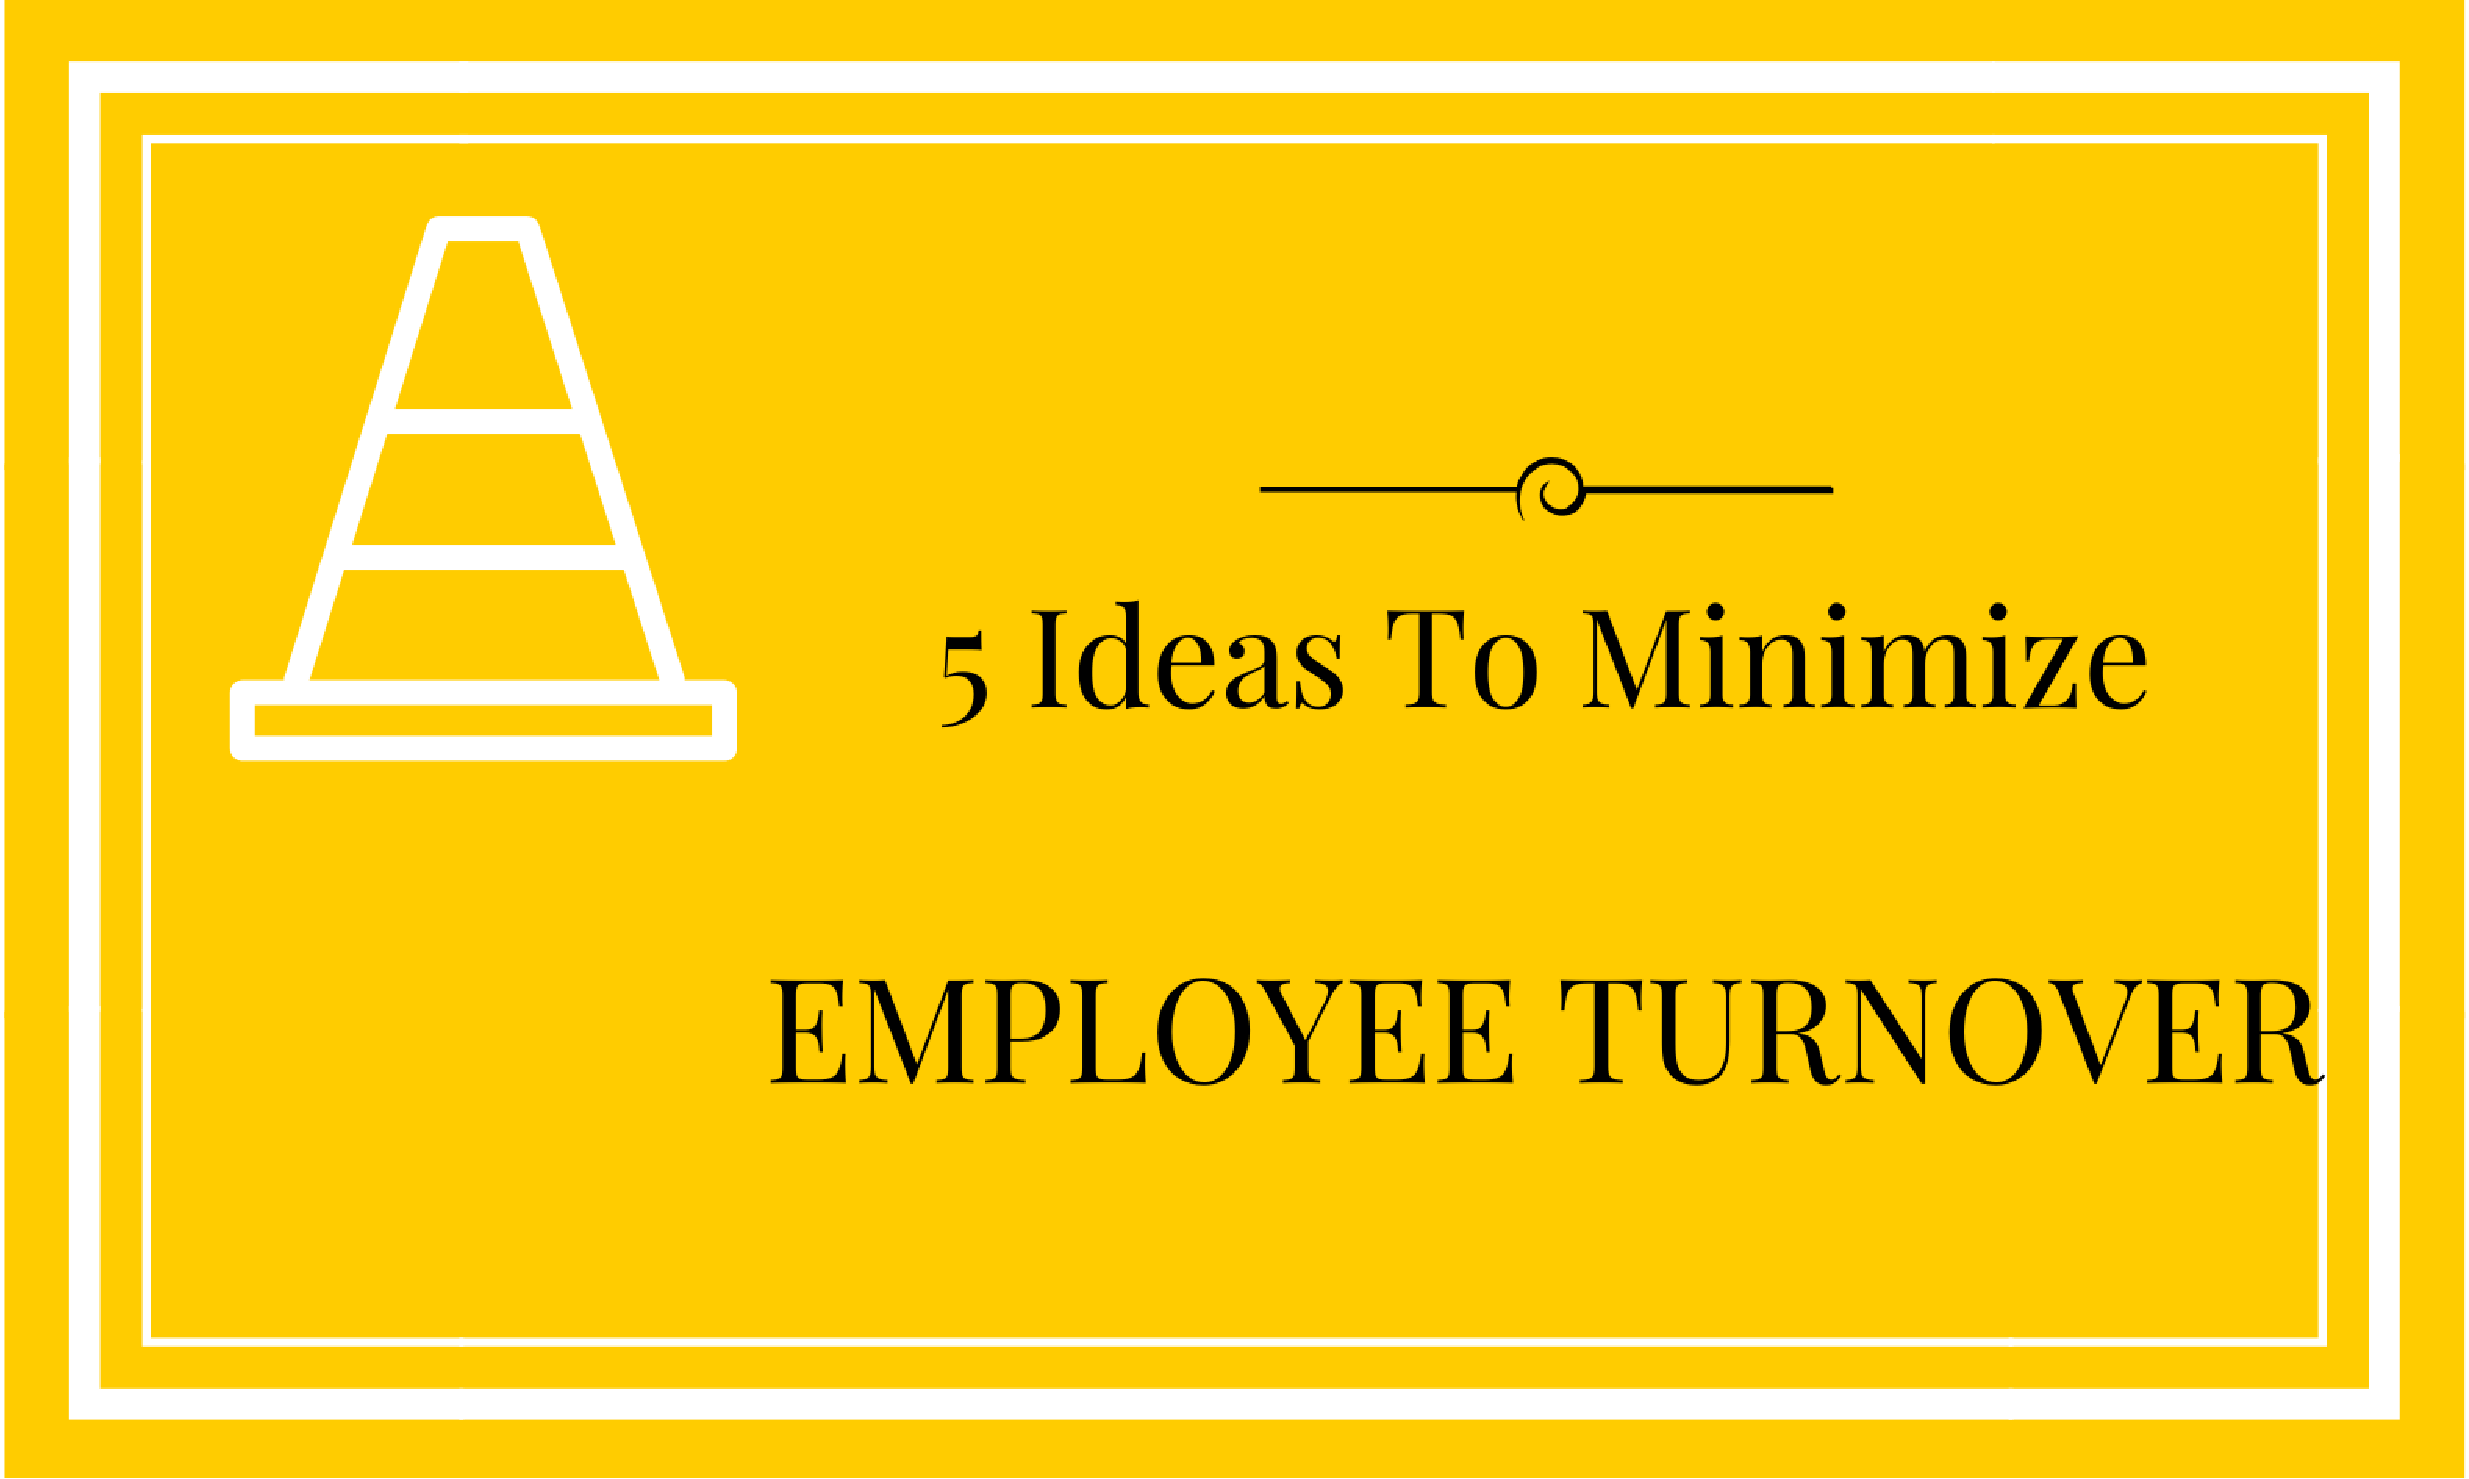 5 Ideas To Minimize Employee Turnover